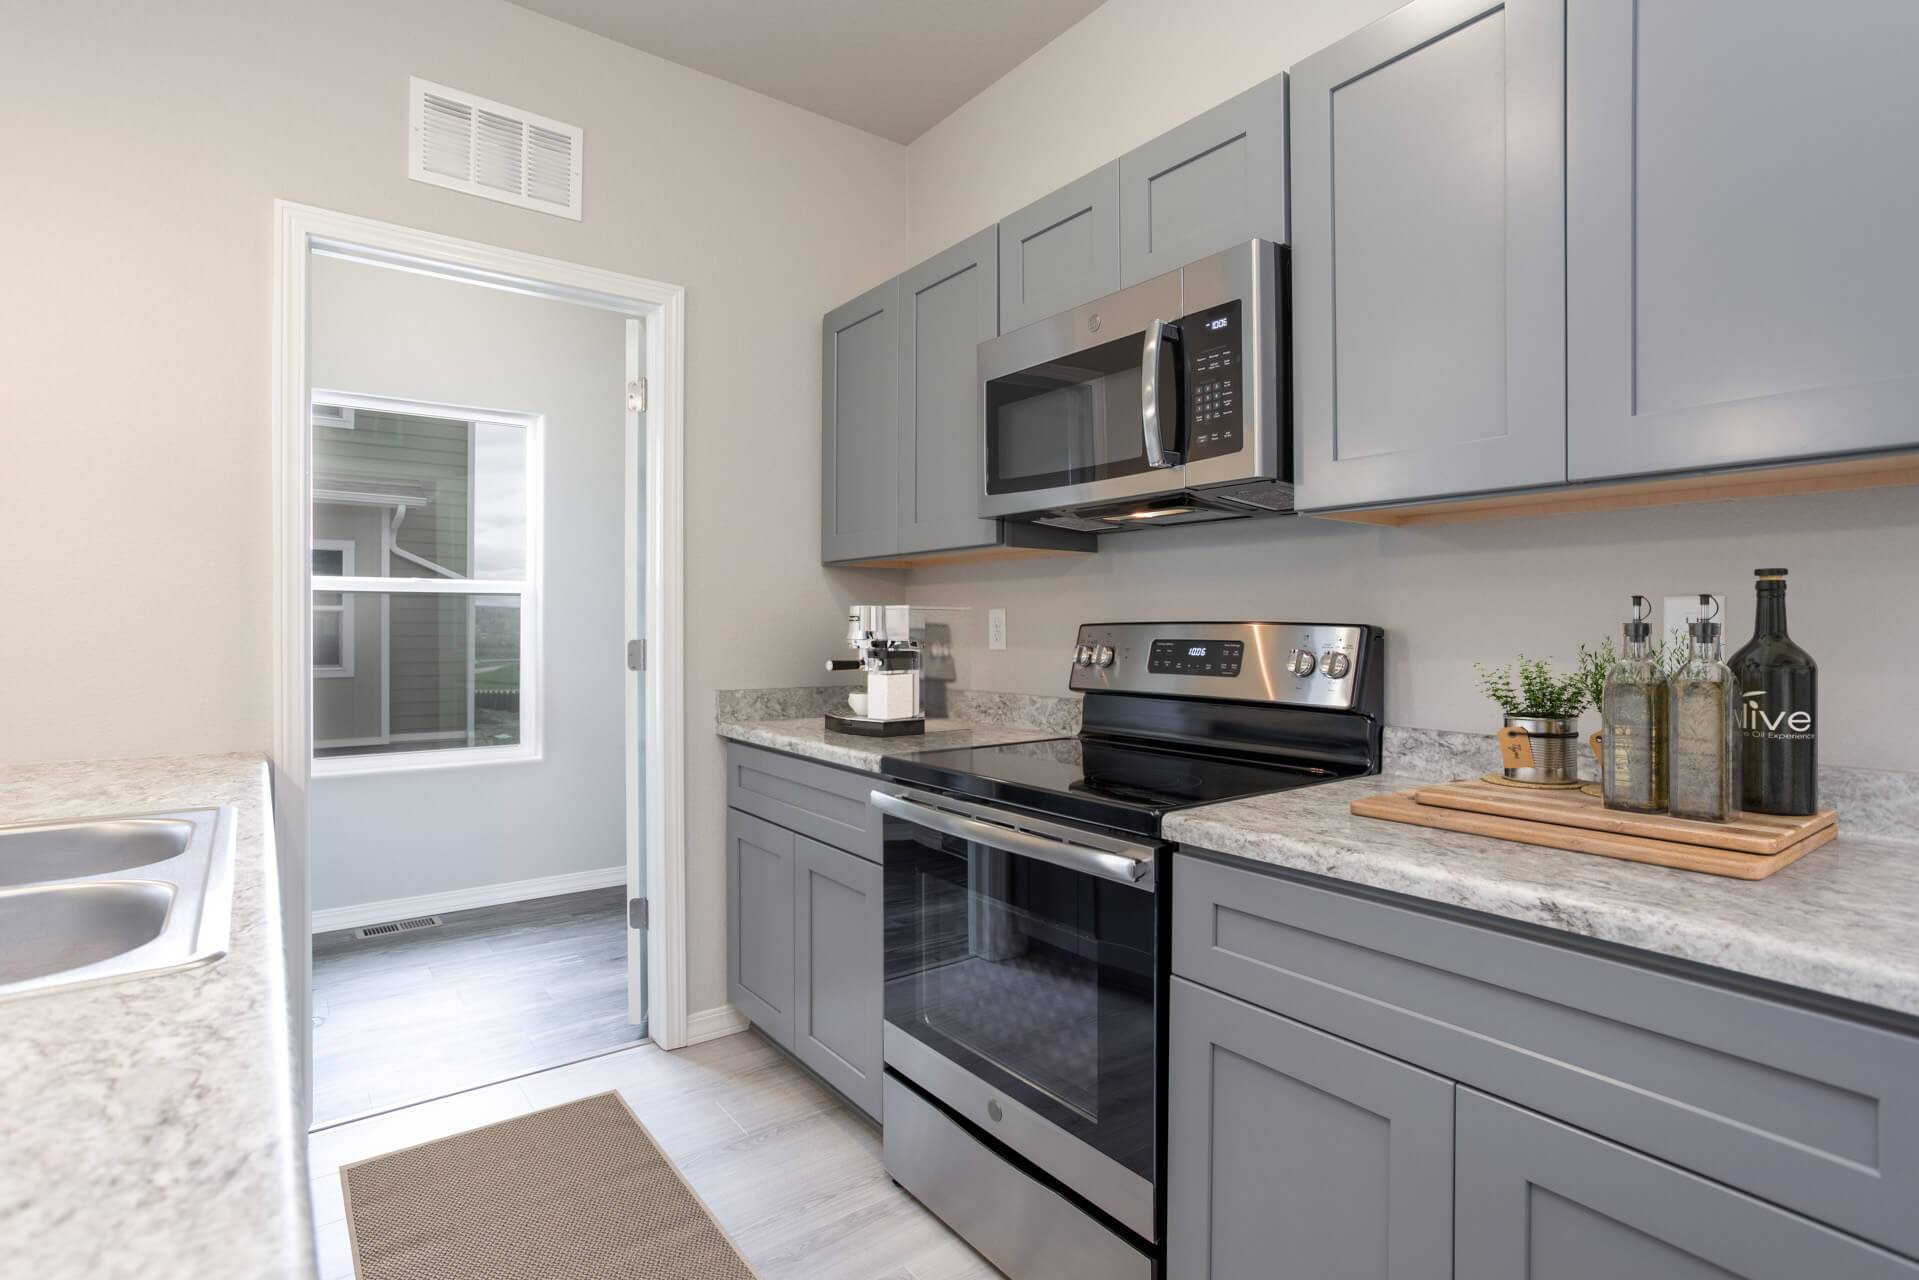 Kitchen featured in The Gladstone By Challenger Homes in Colorado Springs, CO